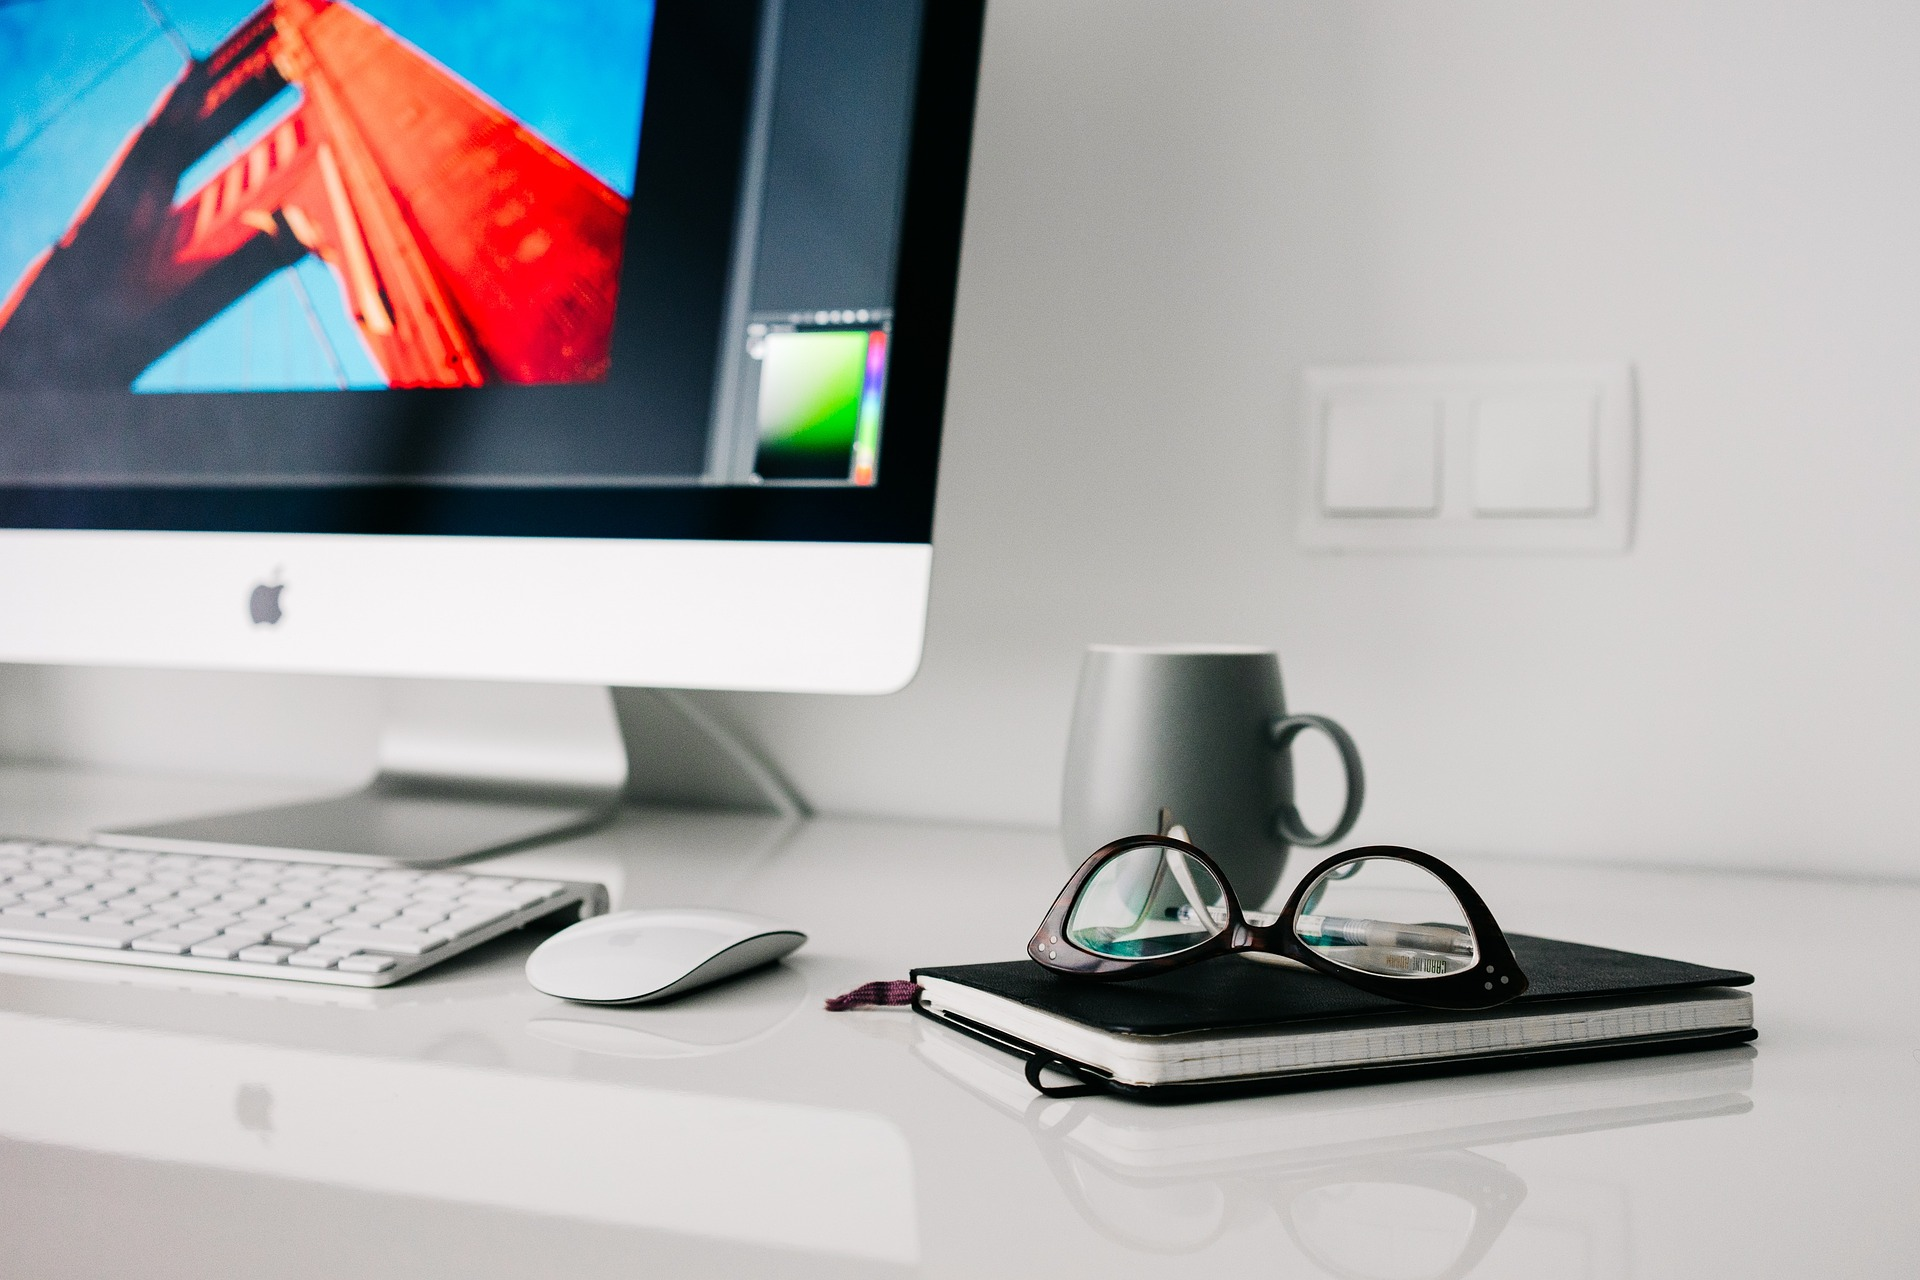 image of computer, coffee cup and glasses